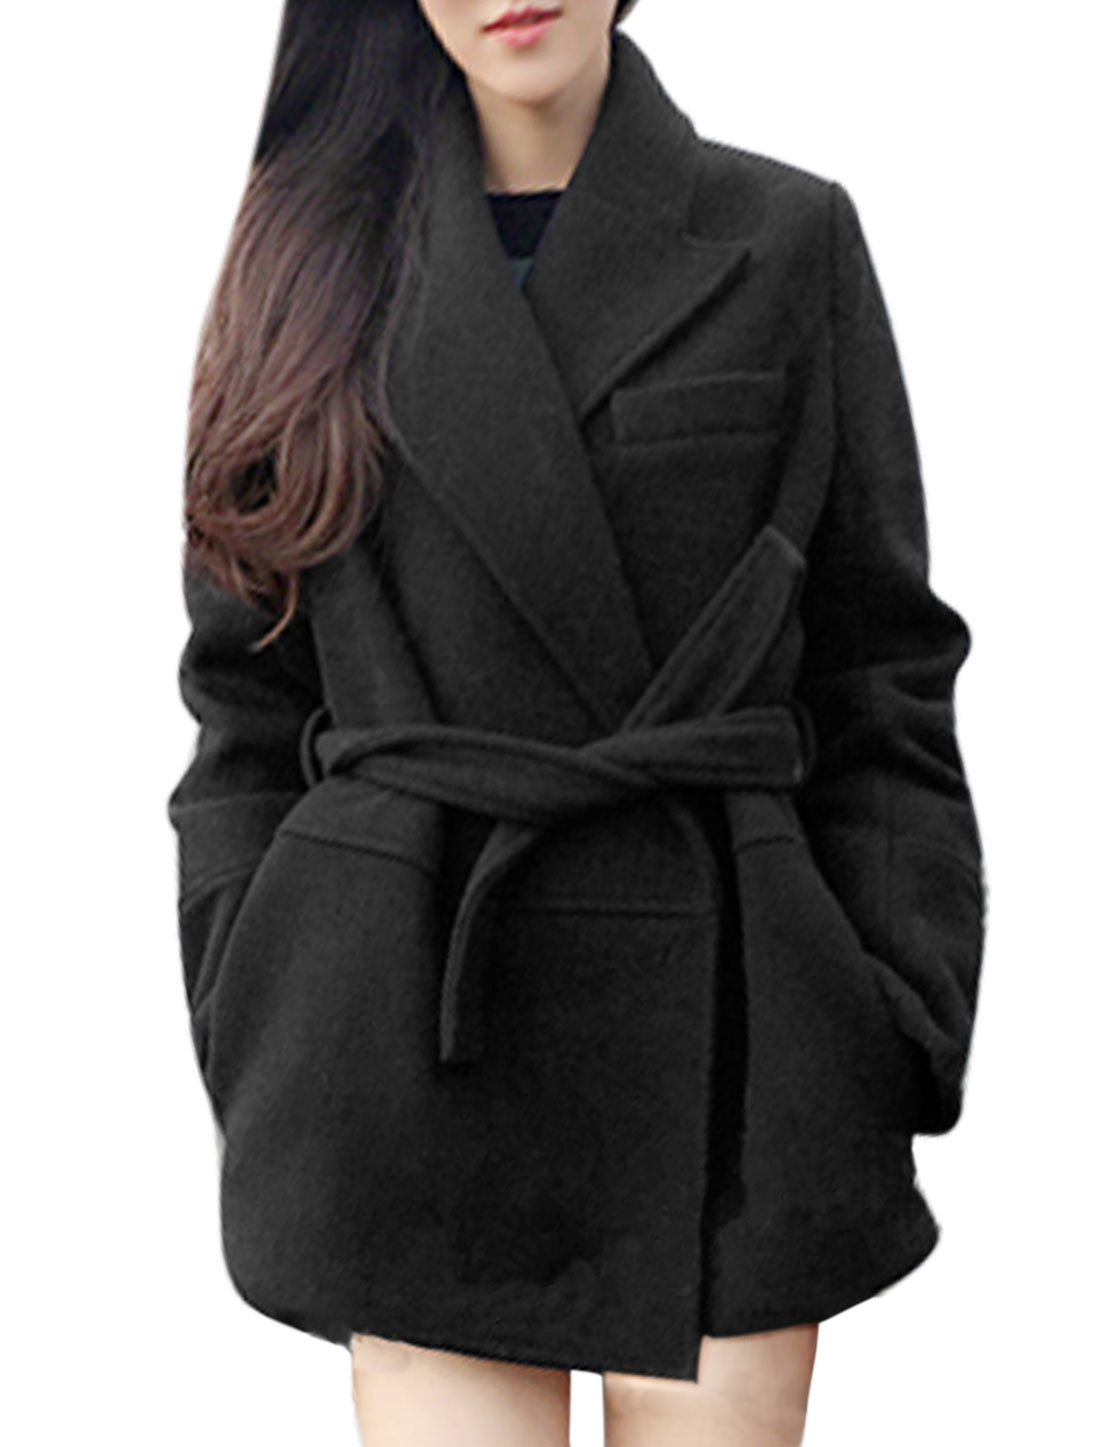 Women Turn Down Collar Open Front Tunic Worsted Coat w Belt Black S